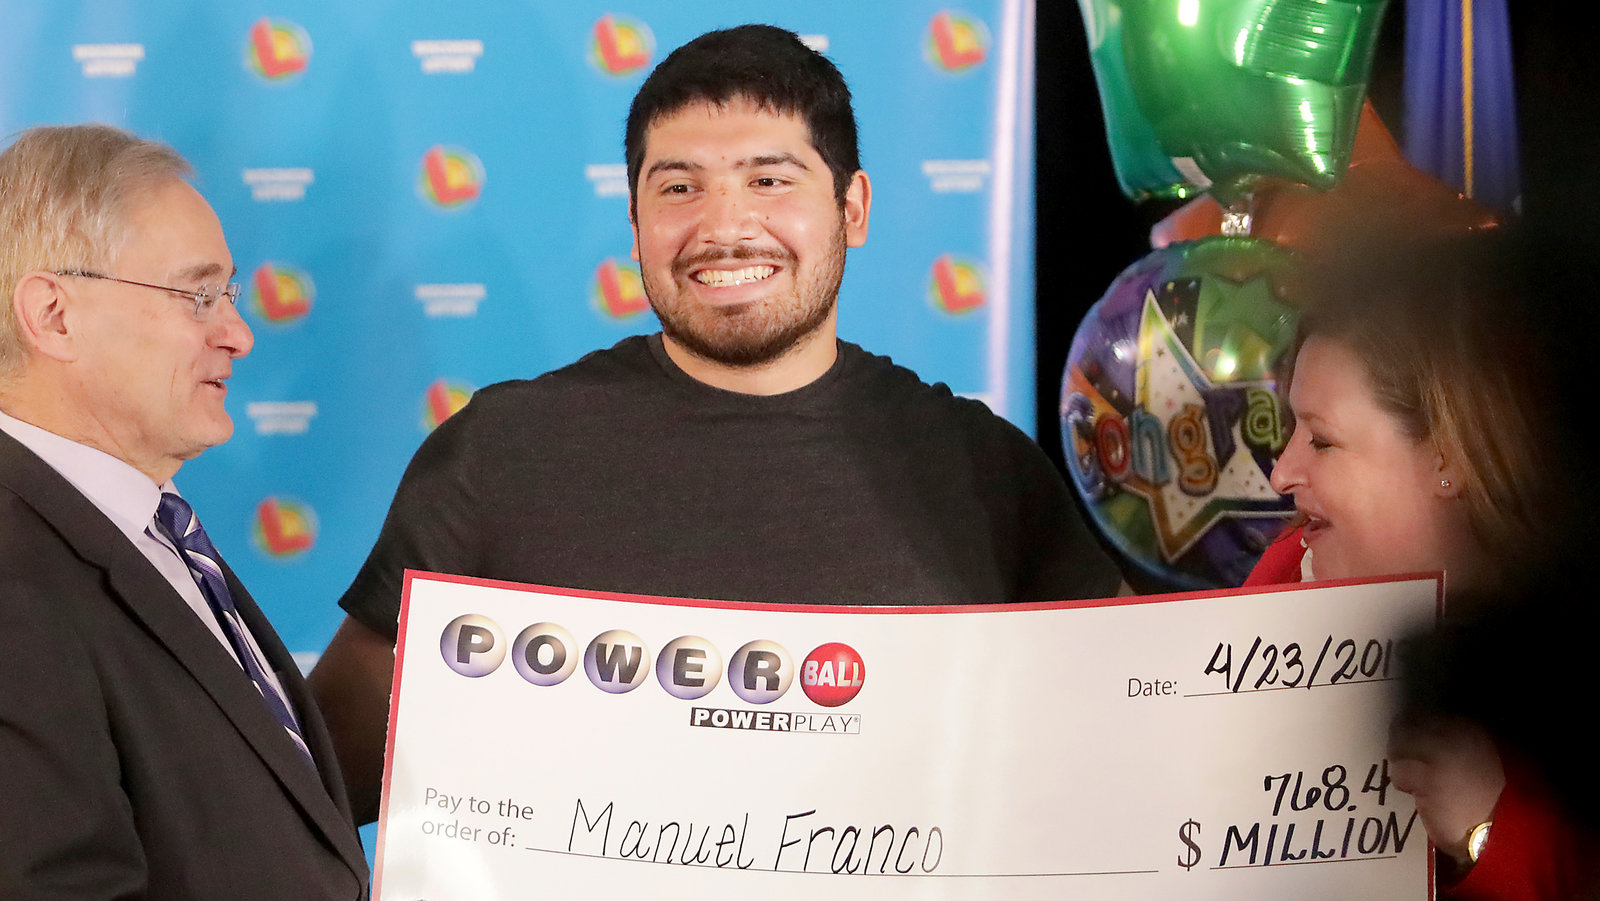 Ways To Become A Powerball Winner